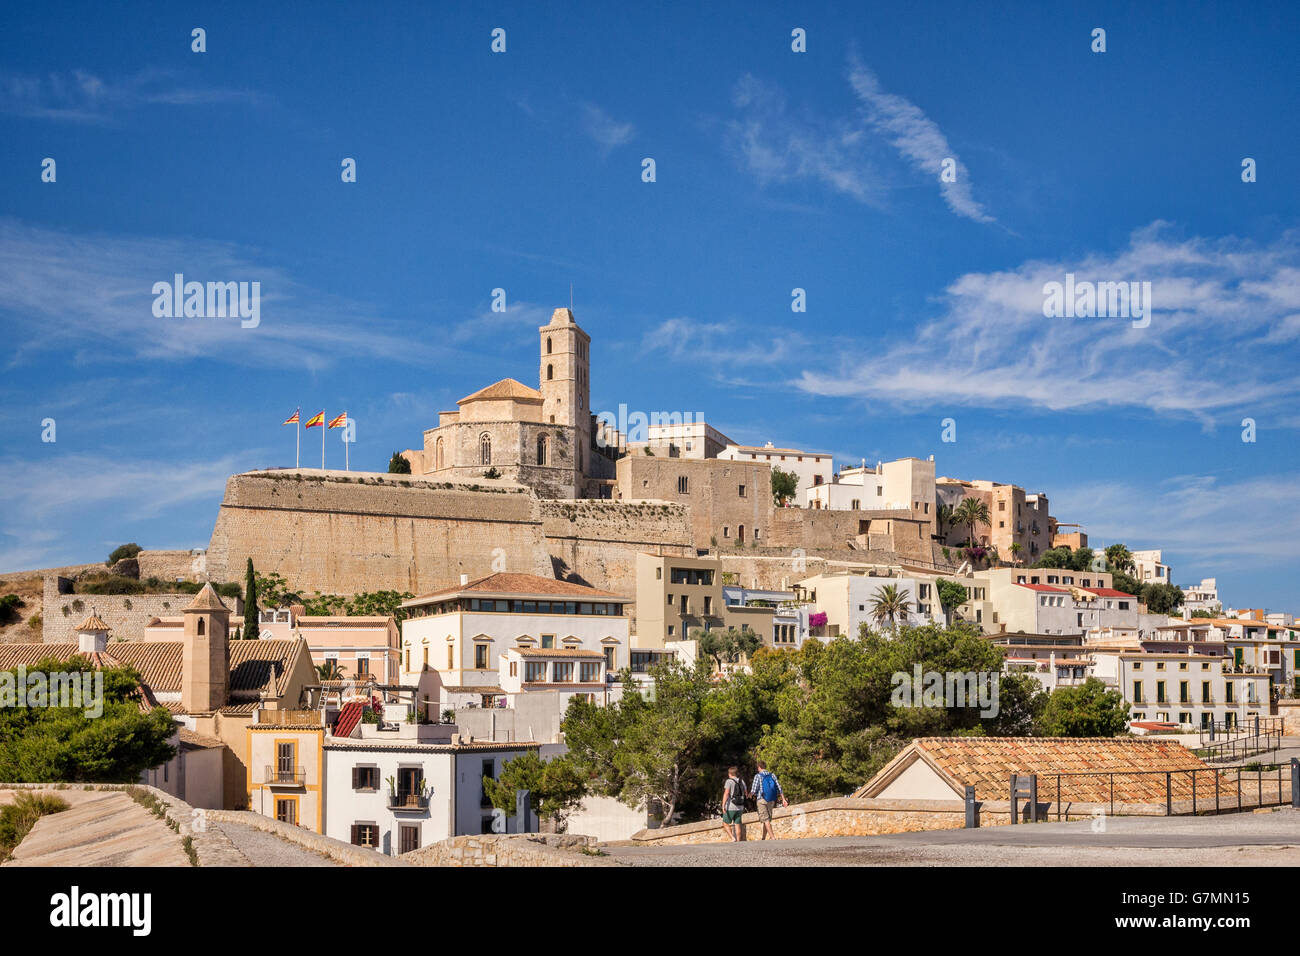 The Dalt Vila, the old part of Ibiza Town, dominated by the Cathedral, and seen from the town walls. - Stock Image